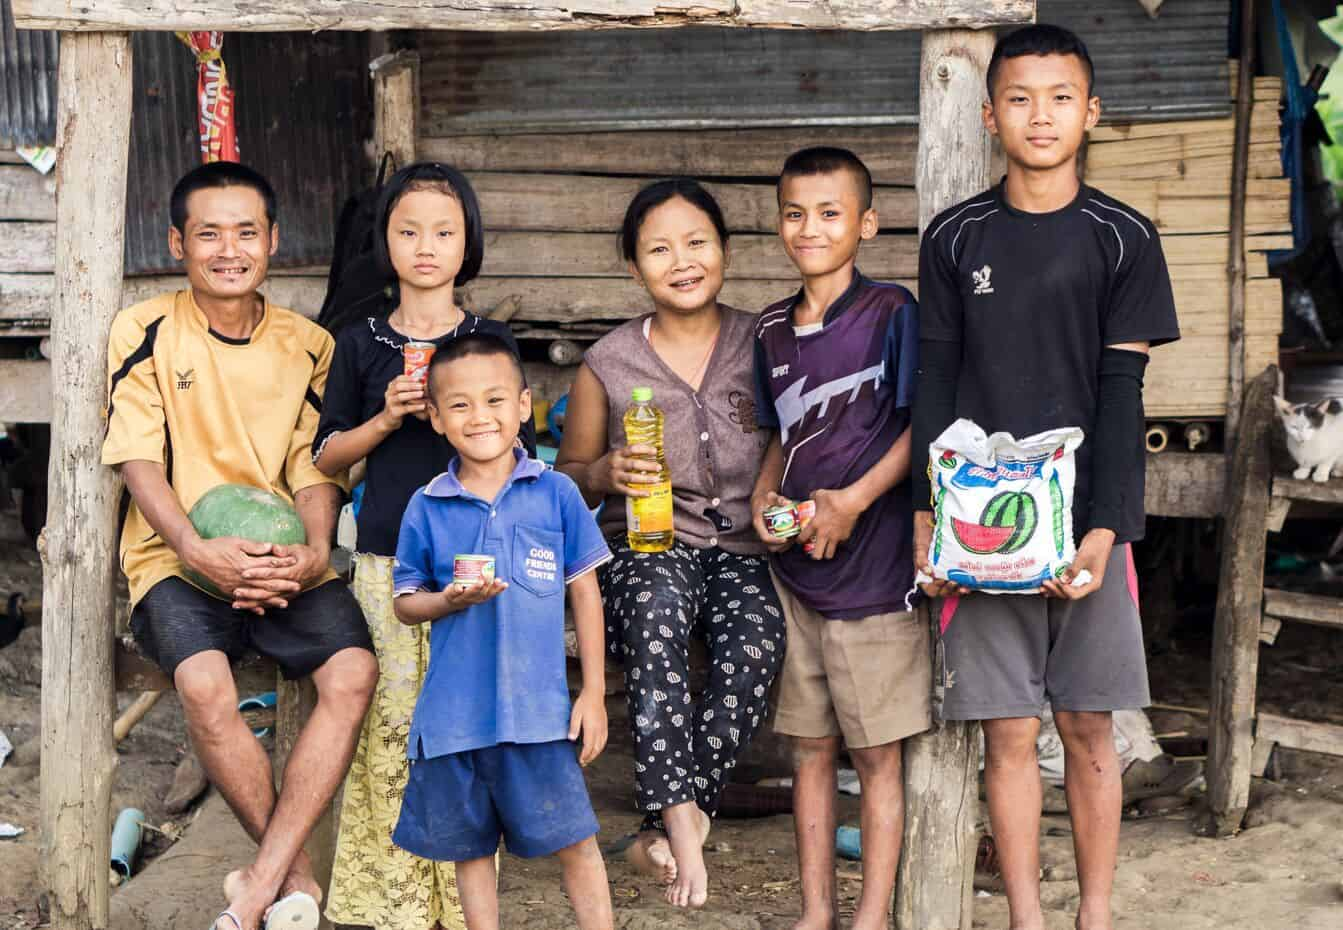 A family of six sits outside a wood home holding food.